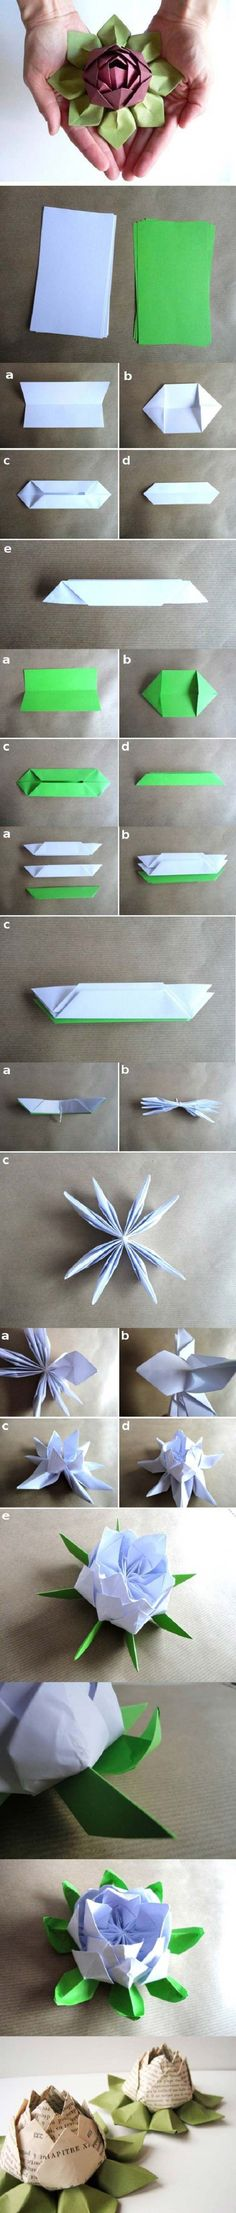 Best Origami Tutorials - Origami Lotus Flower - Easy DIY Origami Tutorial Projects for With Instructions for Flowers, Dog, Gift Box, Star, Owl, Buttlerfly, Heart and Bookmark, Animals - Fun Paper Crafts for Teens, Kids and Adults http://diyprojectsforteens.com/best-origami-tutorials